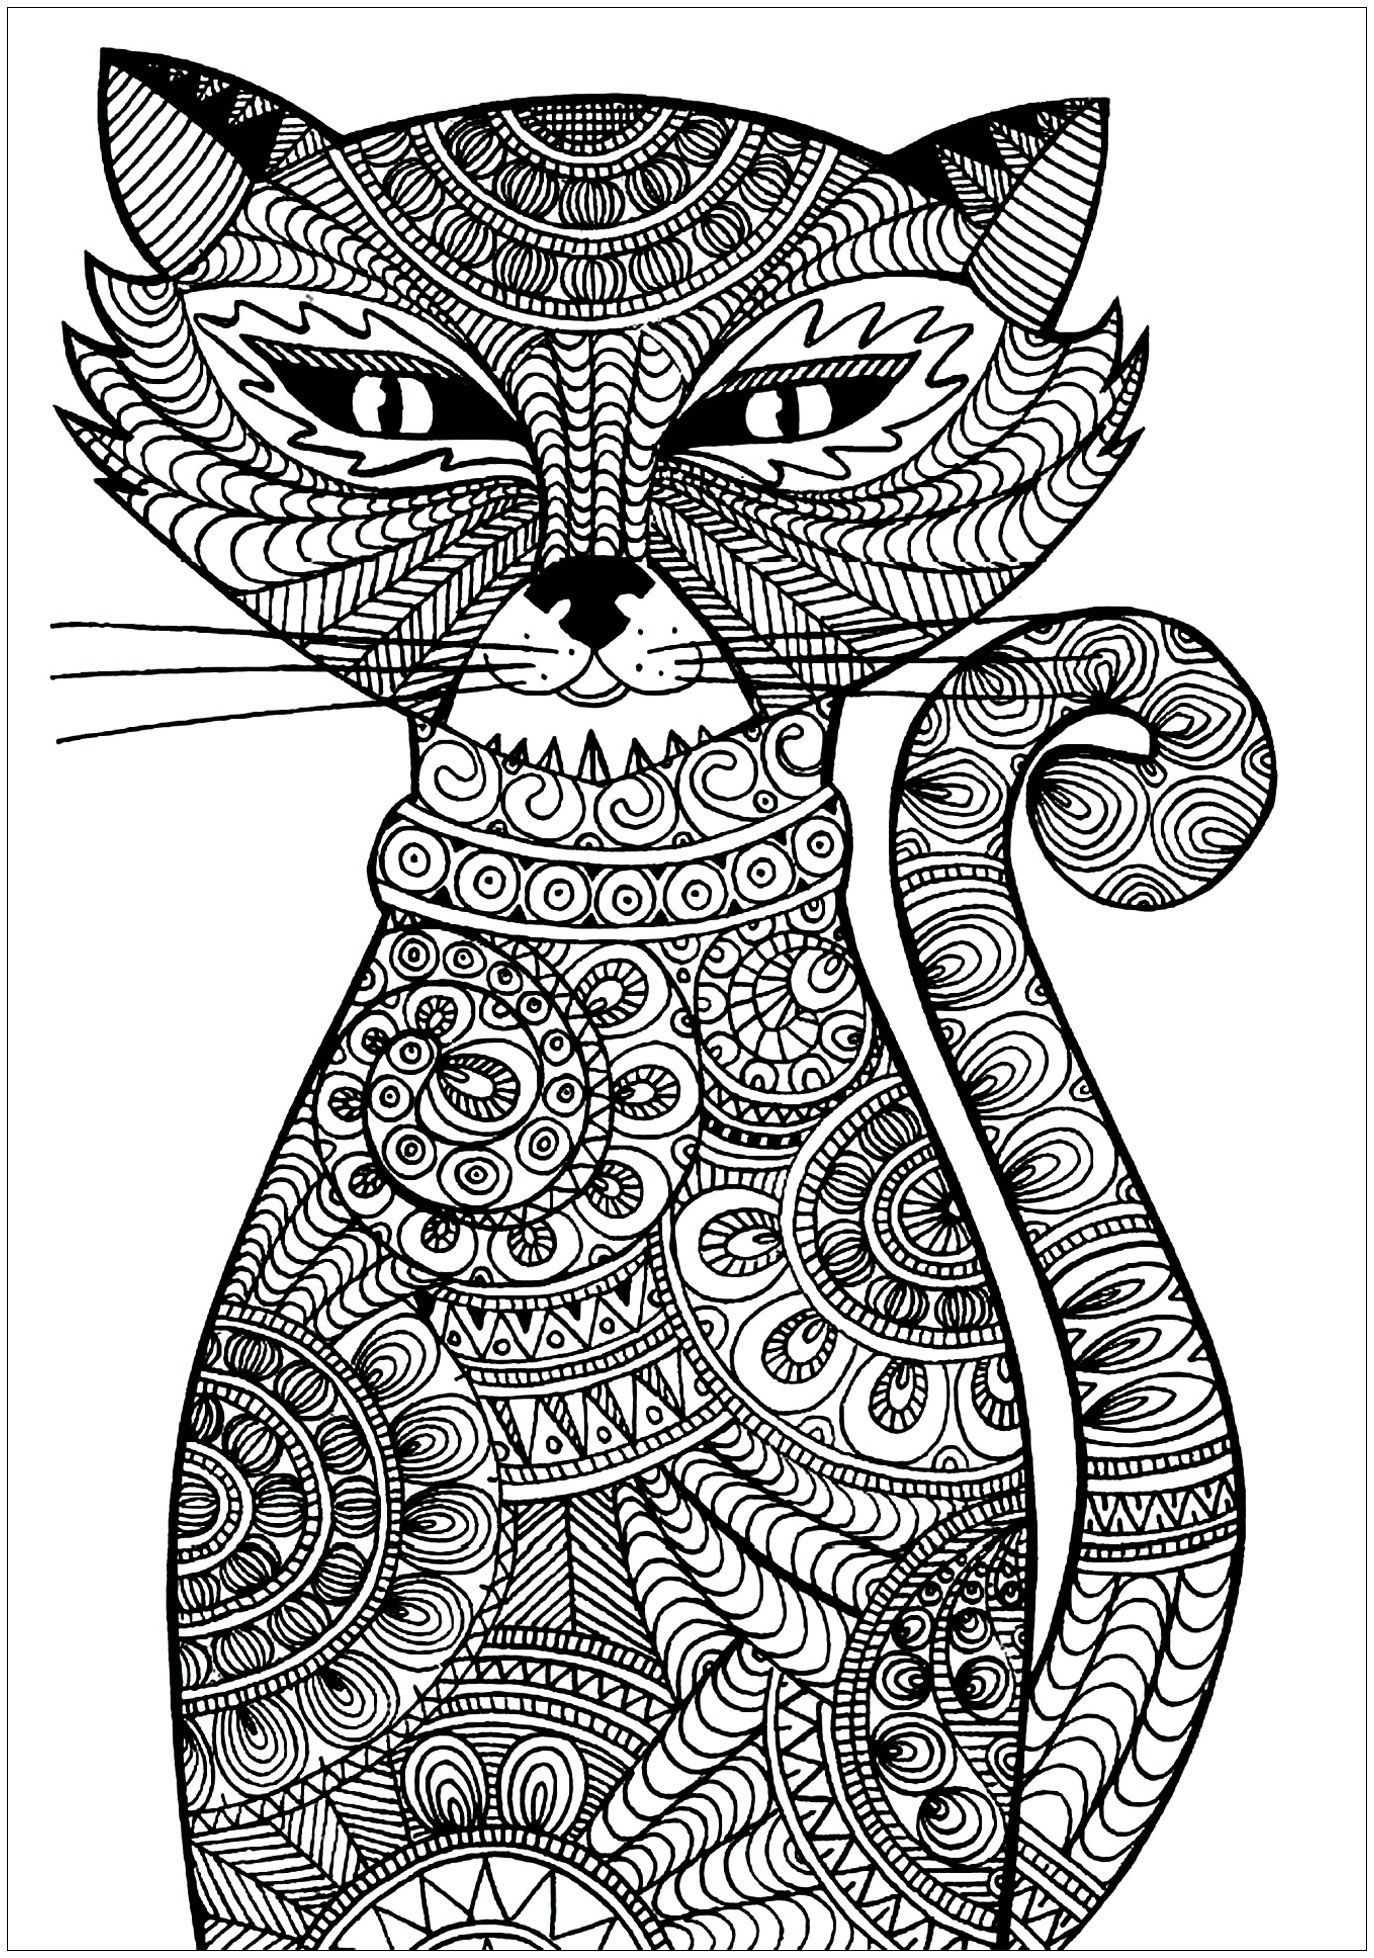 Cat Cat With Zentangle Patterns From The Gallery Cats Keywords Pet Just Color Discover Al Cat Coloring Book Mandala Coloring Pages Cat Coloring Page [ 1958 x 1374 Pixel ]